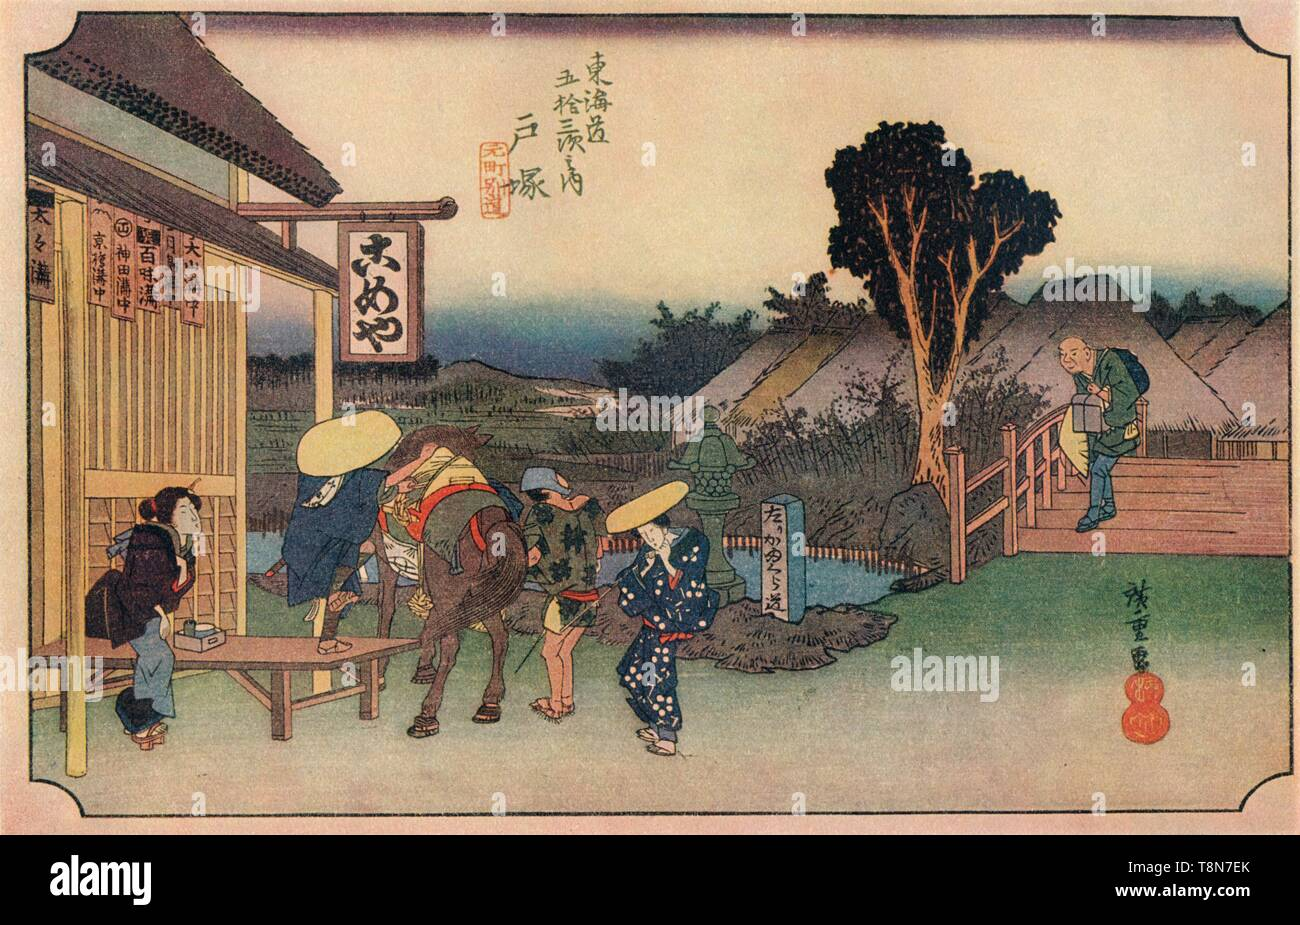 "'Posting Station No 5  of the Tokaido Series - Totsuka (Branch of Main Street)', 1831-1834, (1936). Totsuka-juku in 1830s, by Utagawa Hiroshige (1797-1858) from Hoeido edition of The Fifty-three Stations of the Tokaido (1831-1834). From ""The Studio Volume III"" [London Offices of the Studio, London, 1936.] - Stock Image"